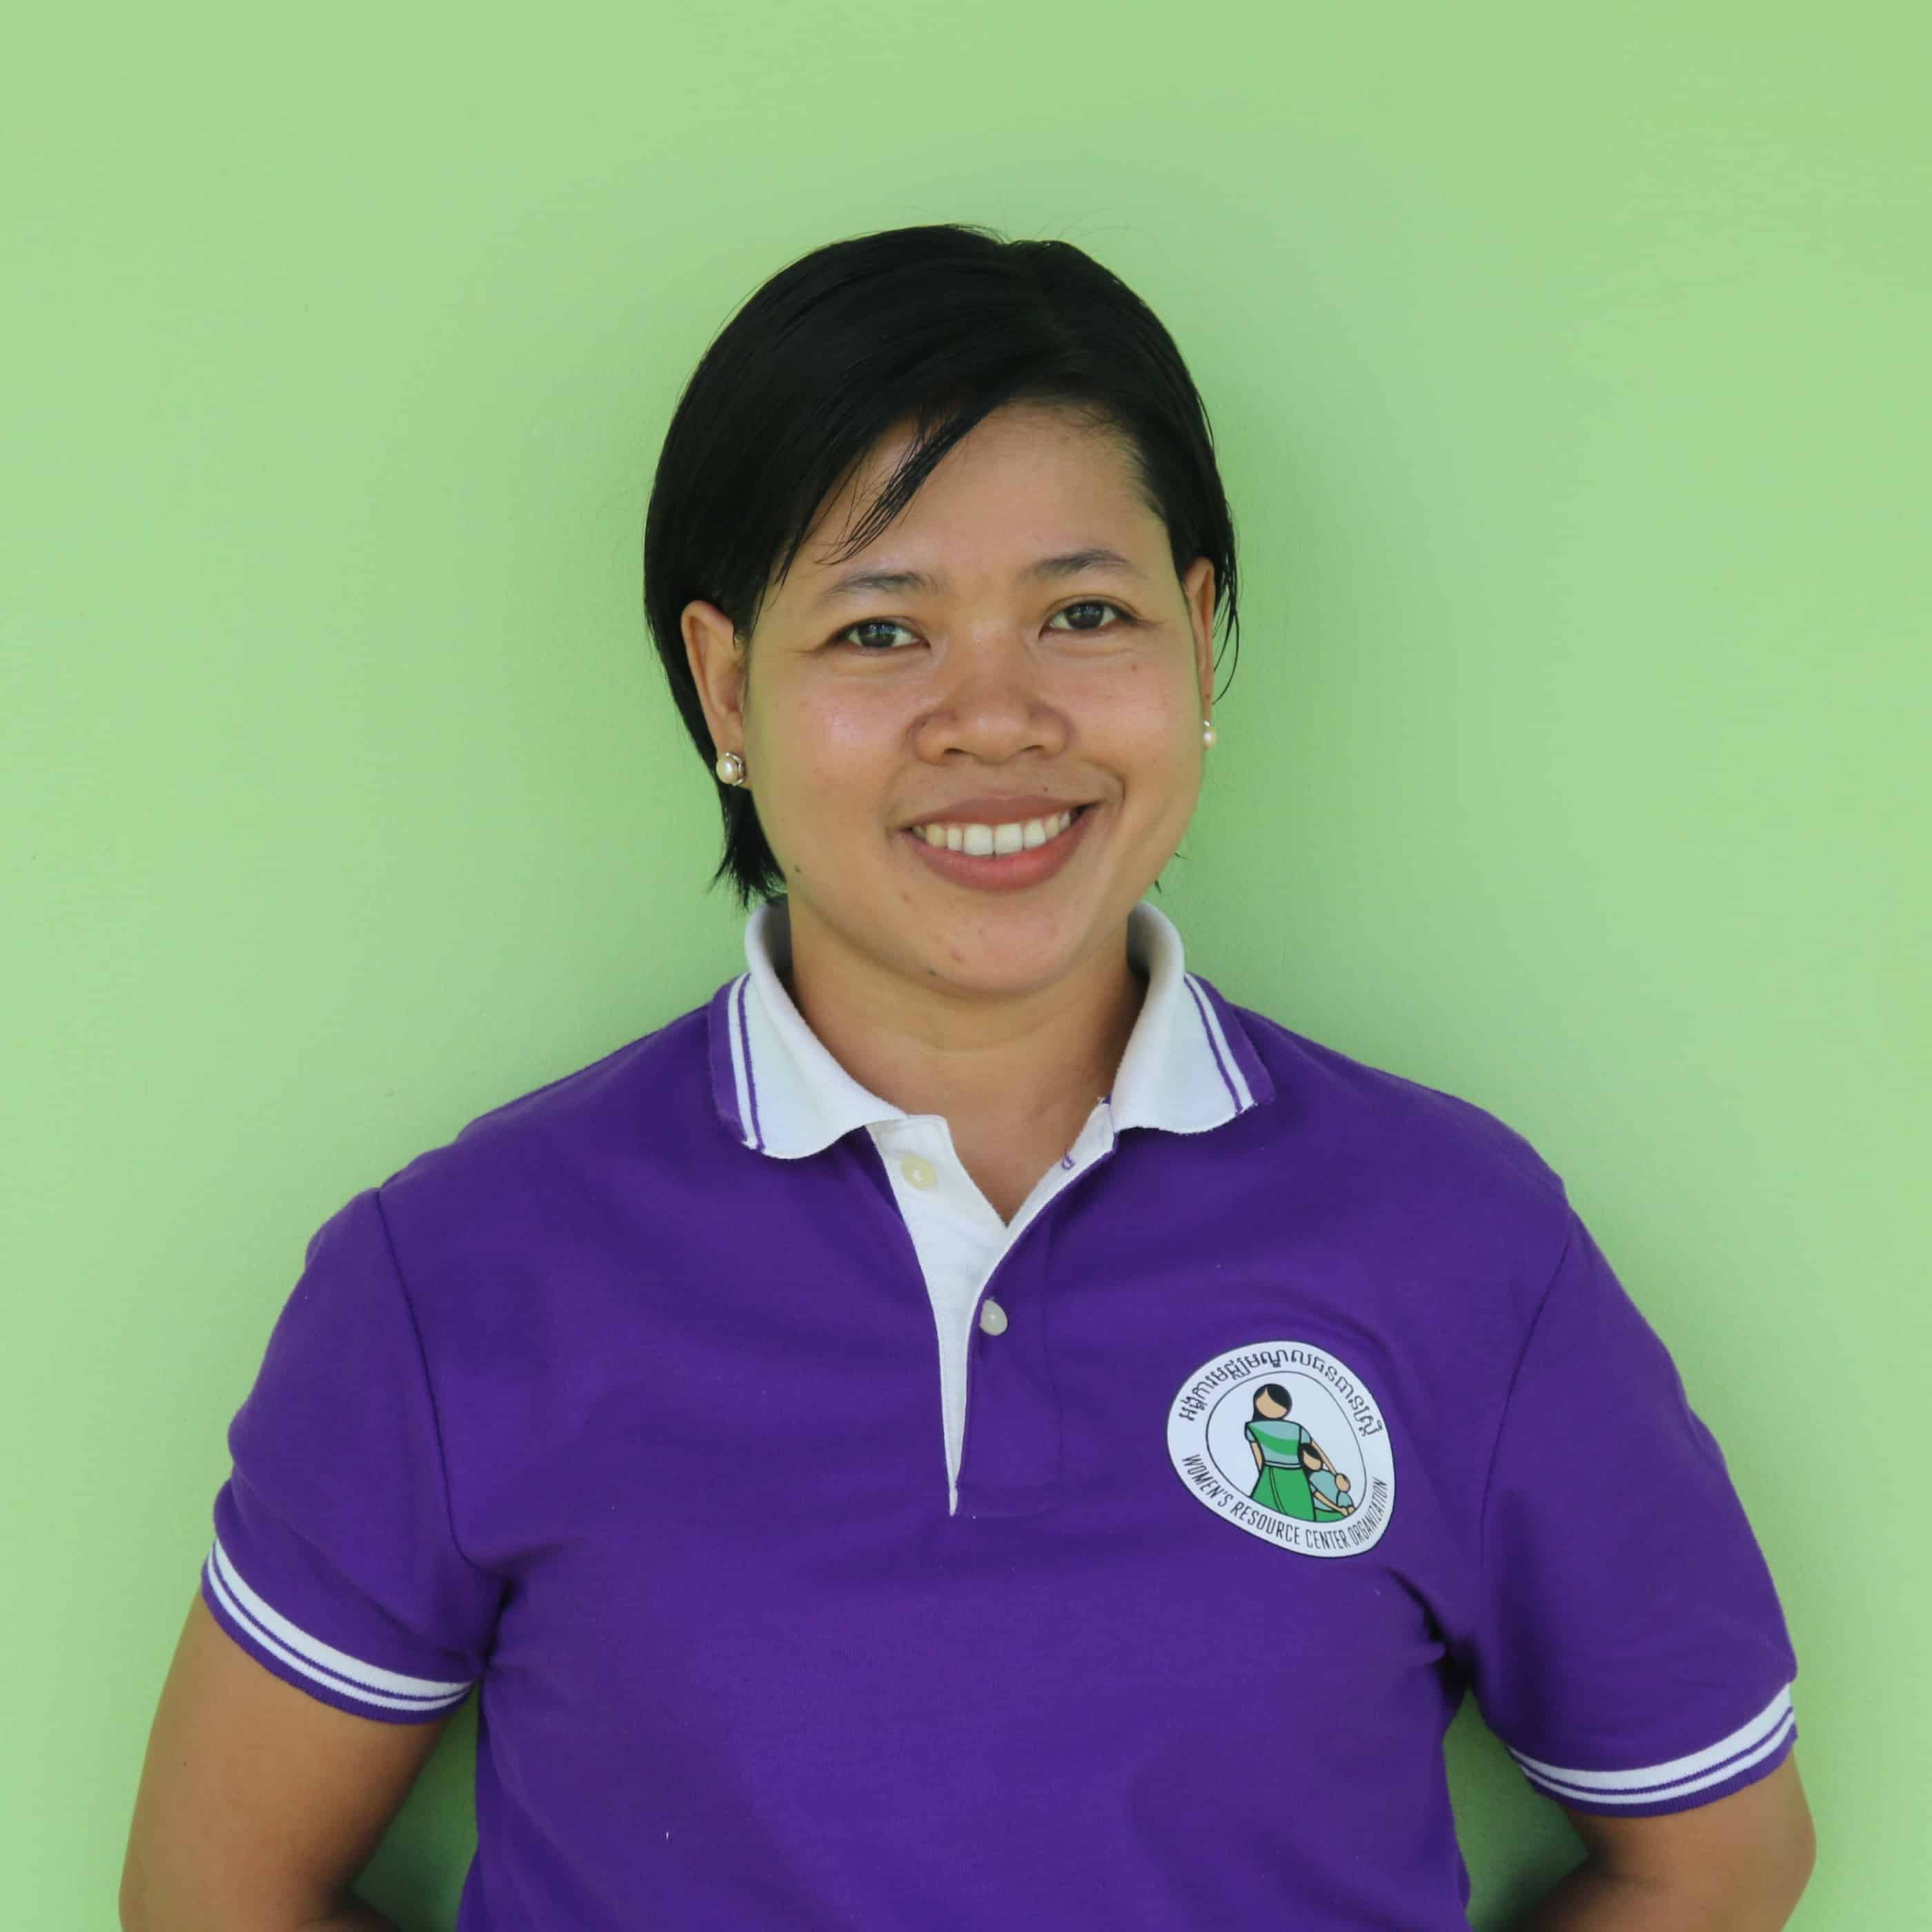 Pisey Khim, Program Manager at Women's Resource Center, Cambodia